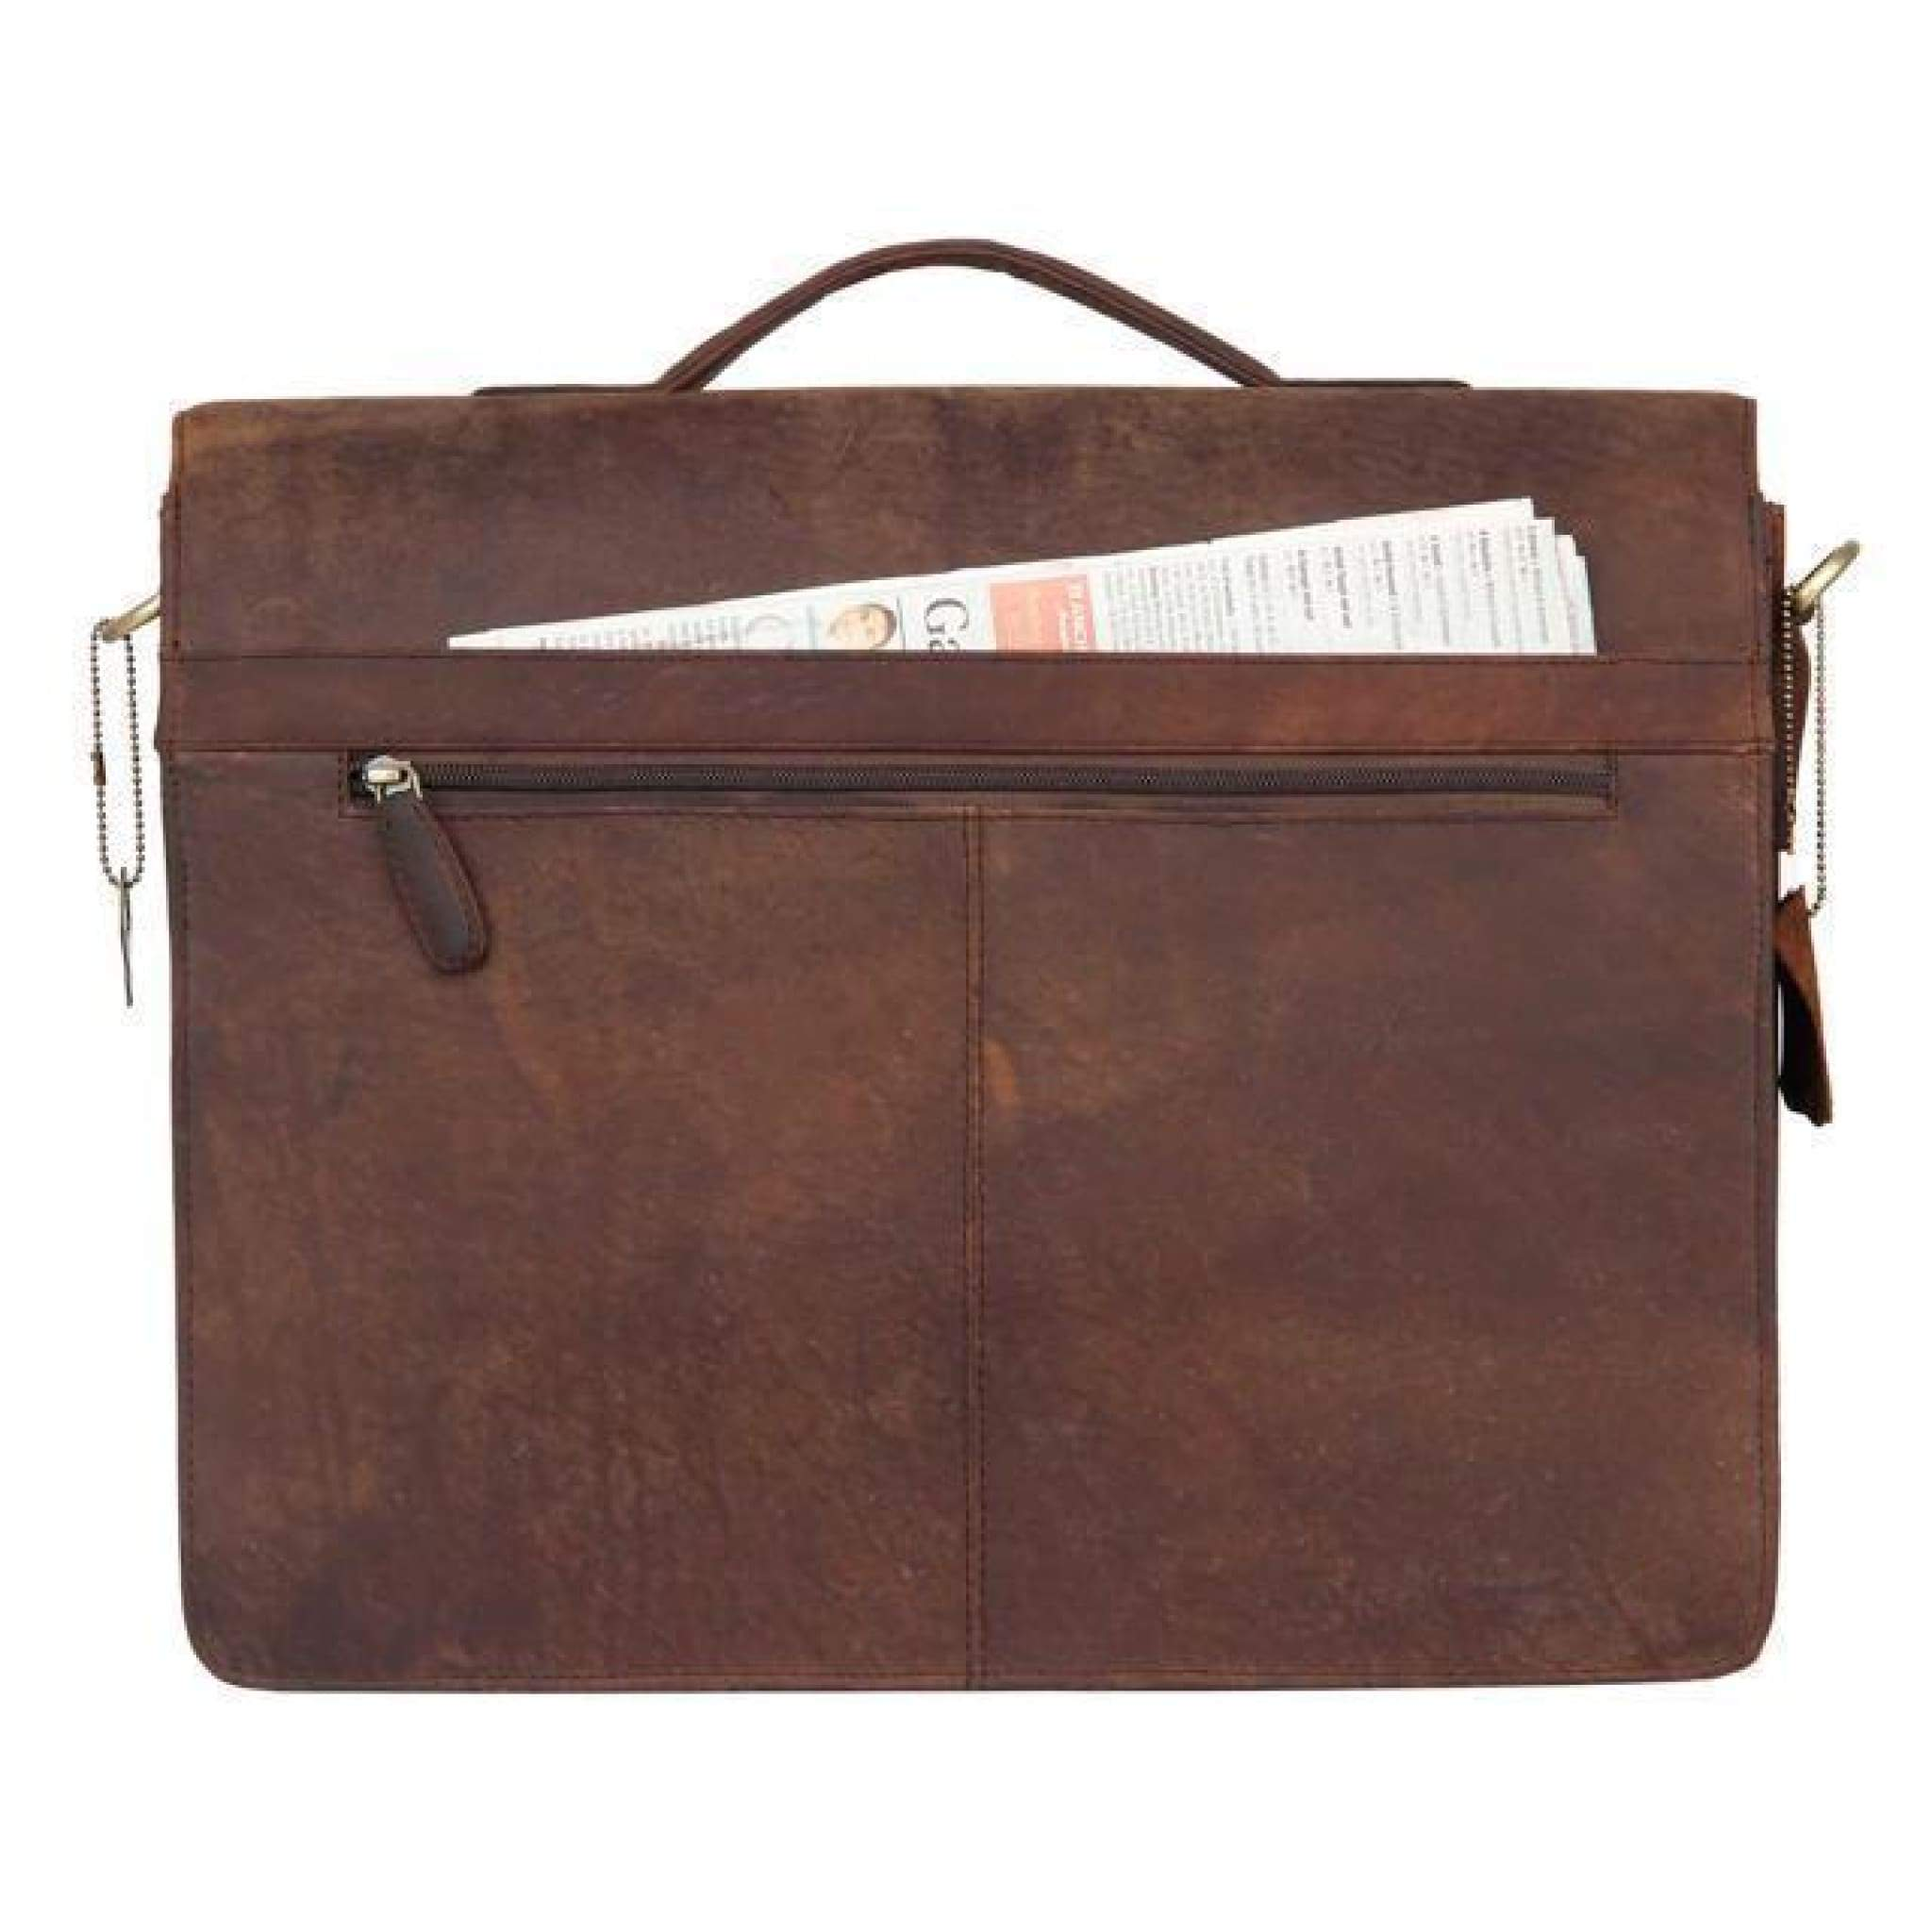 Rusthide | Vintage Leather Messenger Bag - Toledo / Free Shipping: Rusthide.com